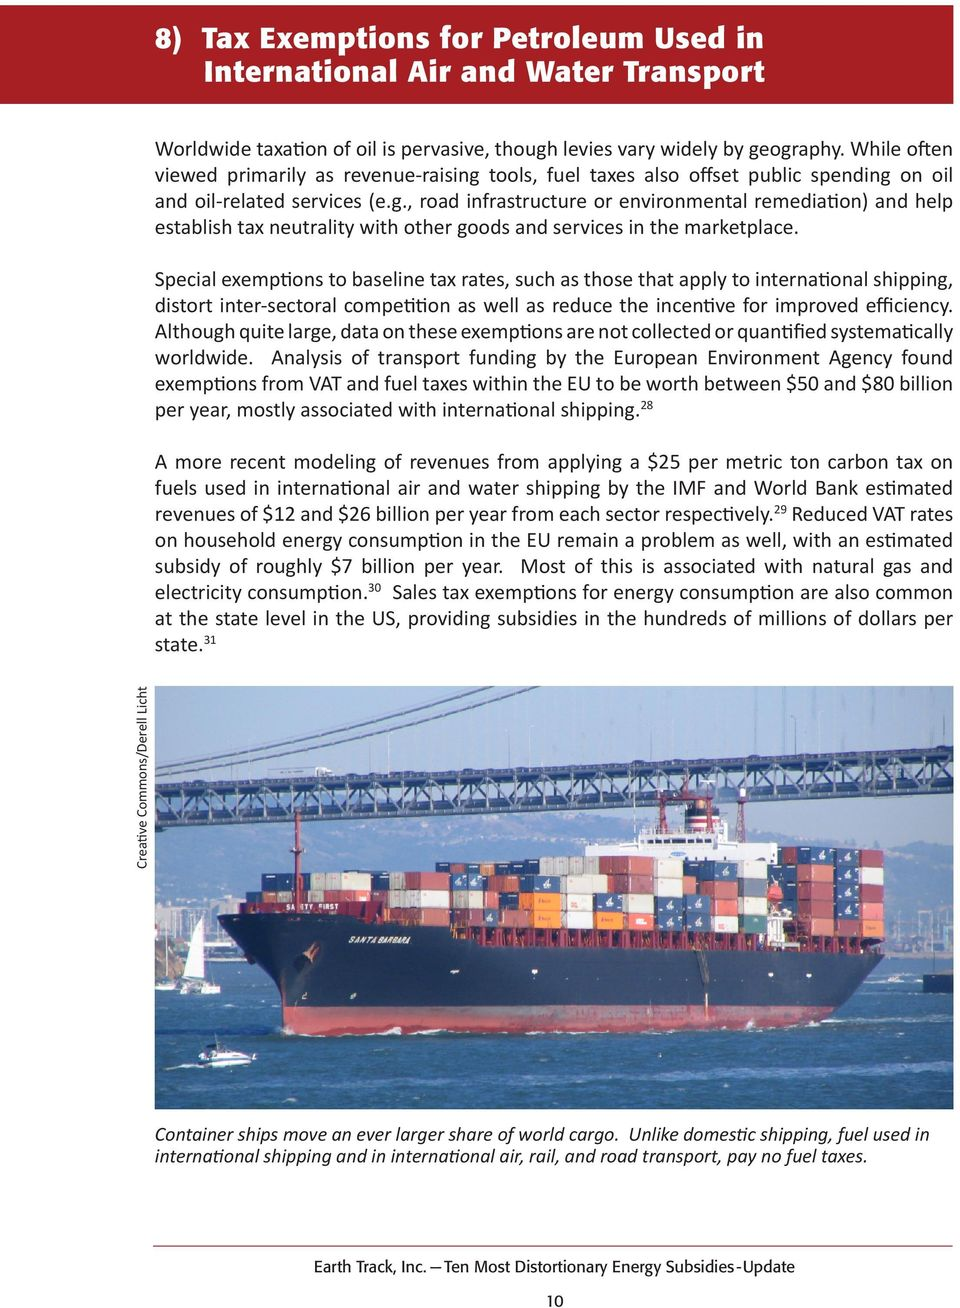 Special exemptions to baseline tax rates, such as those that apply to international shipping, distort inter-sectoral competition as well as reduce the incentive for improved efficiency.